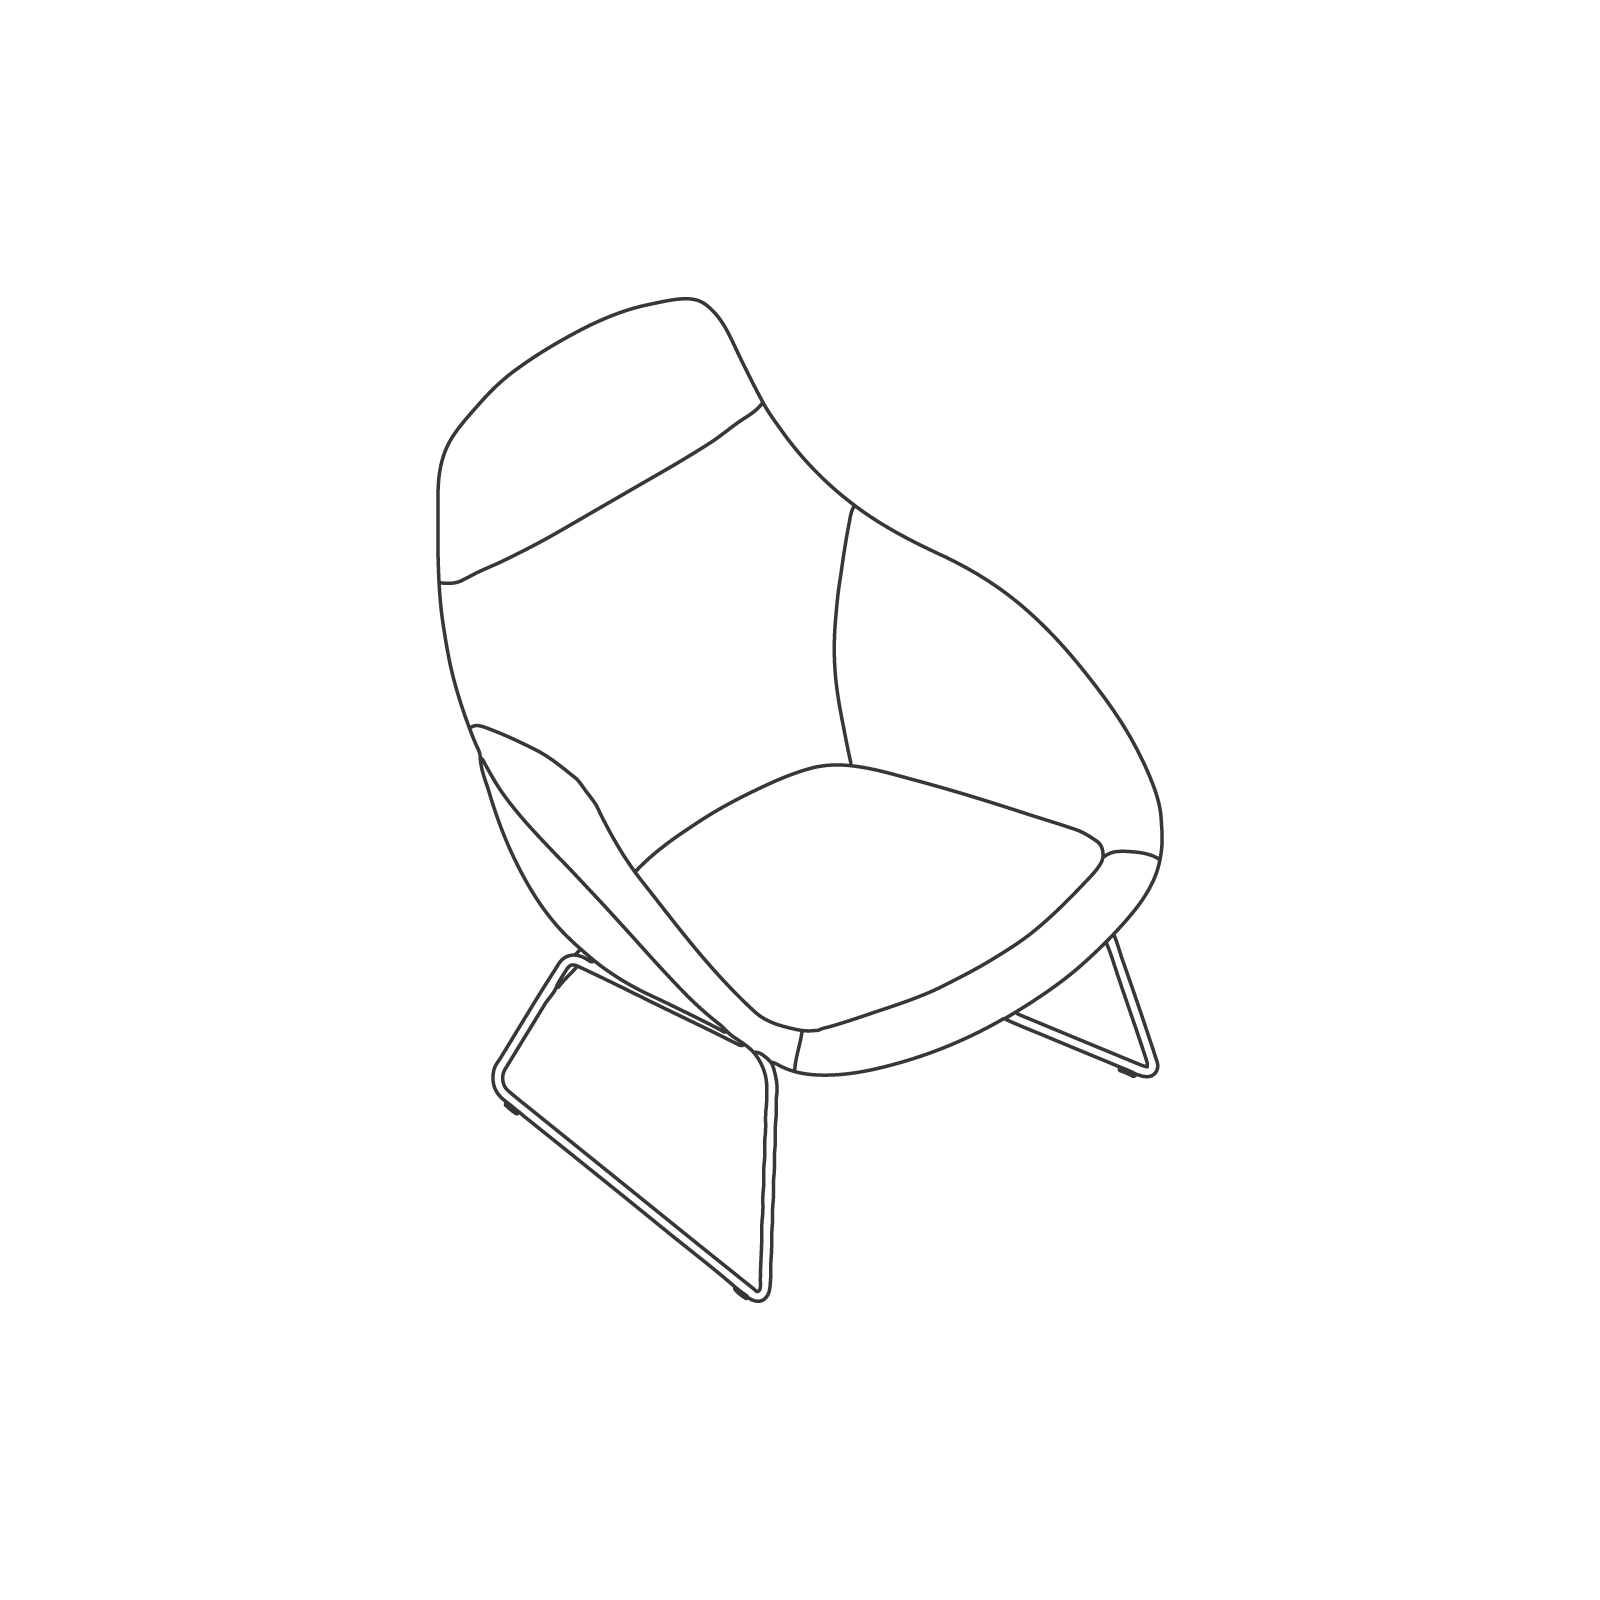 A line drawing of Always Lounge Chair–Sled Base.